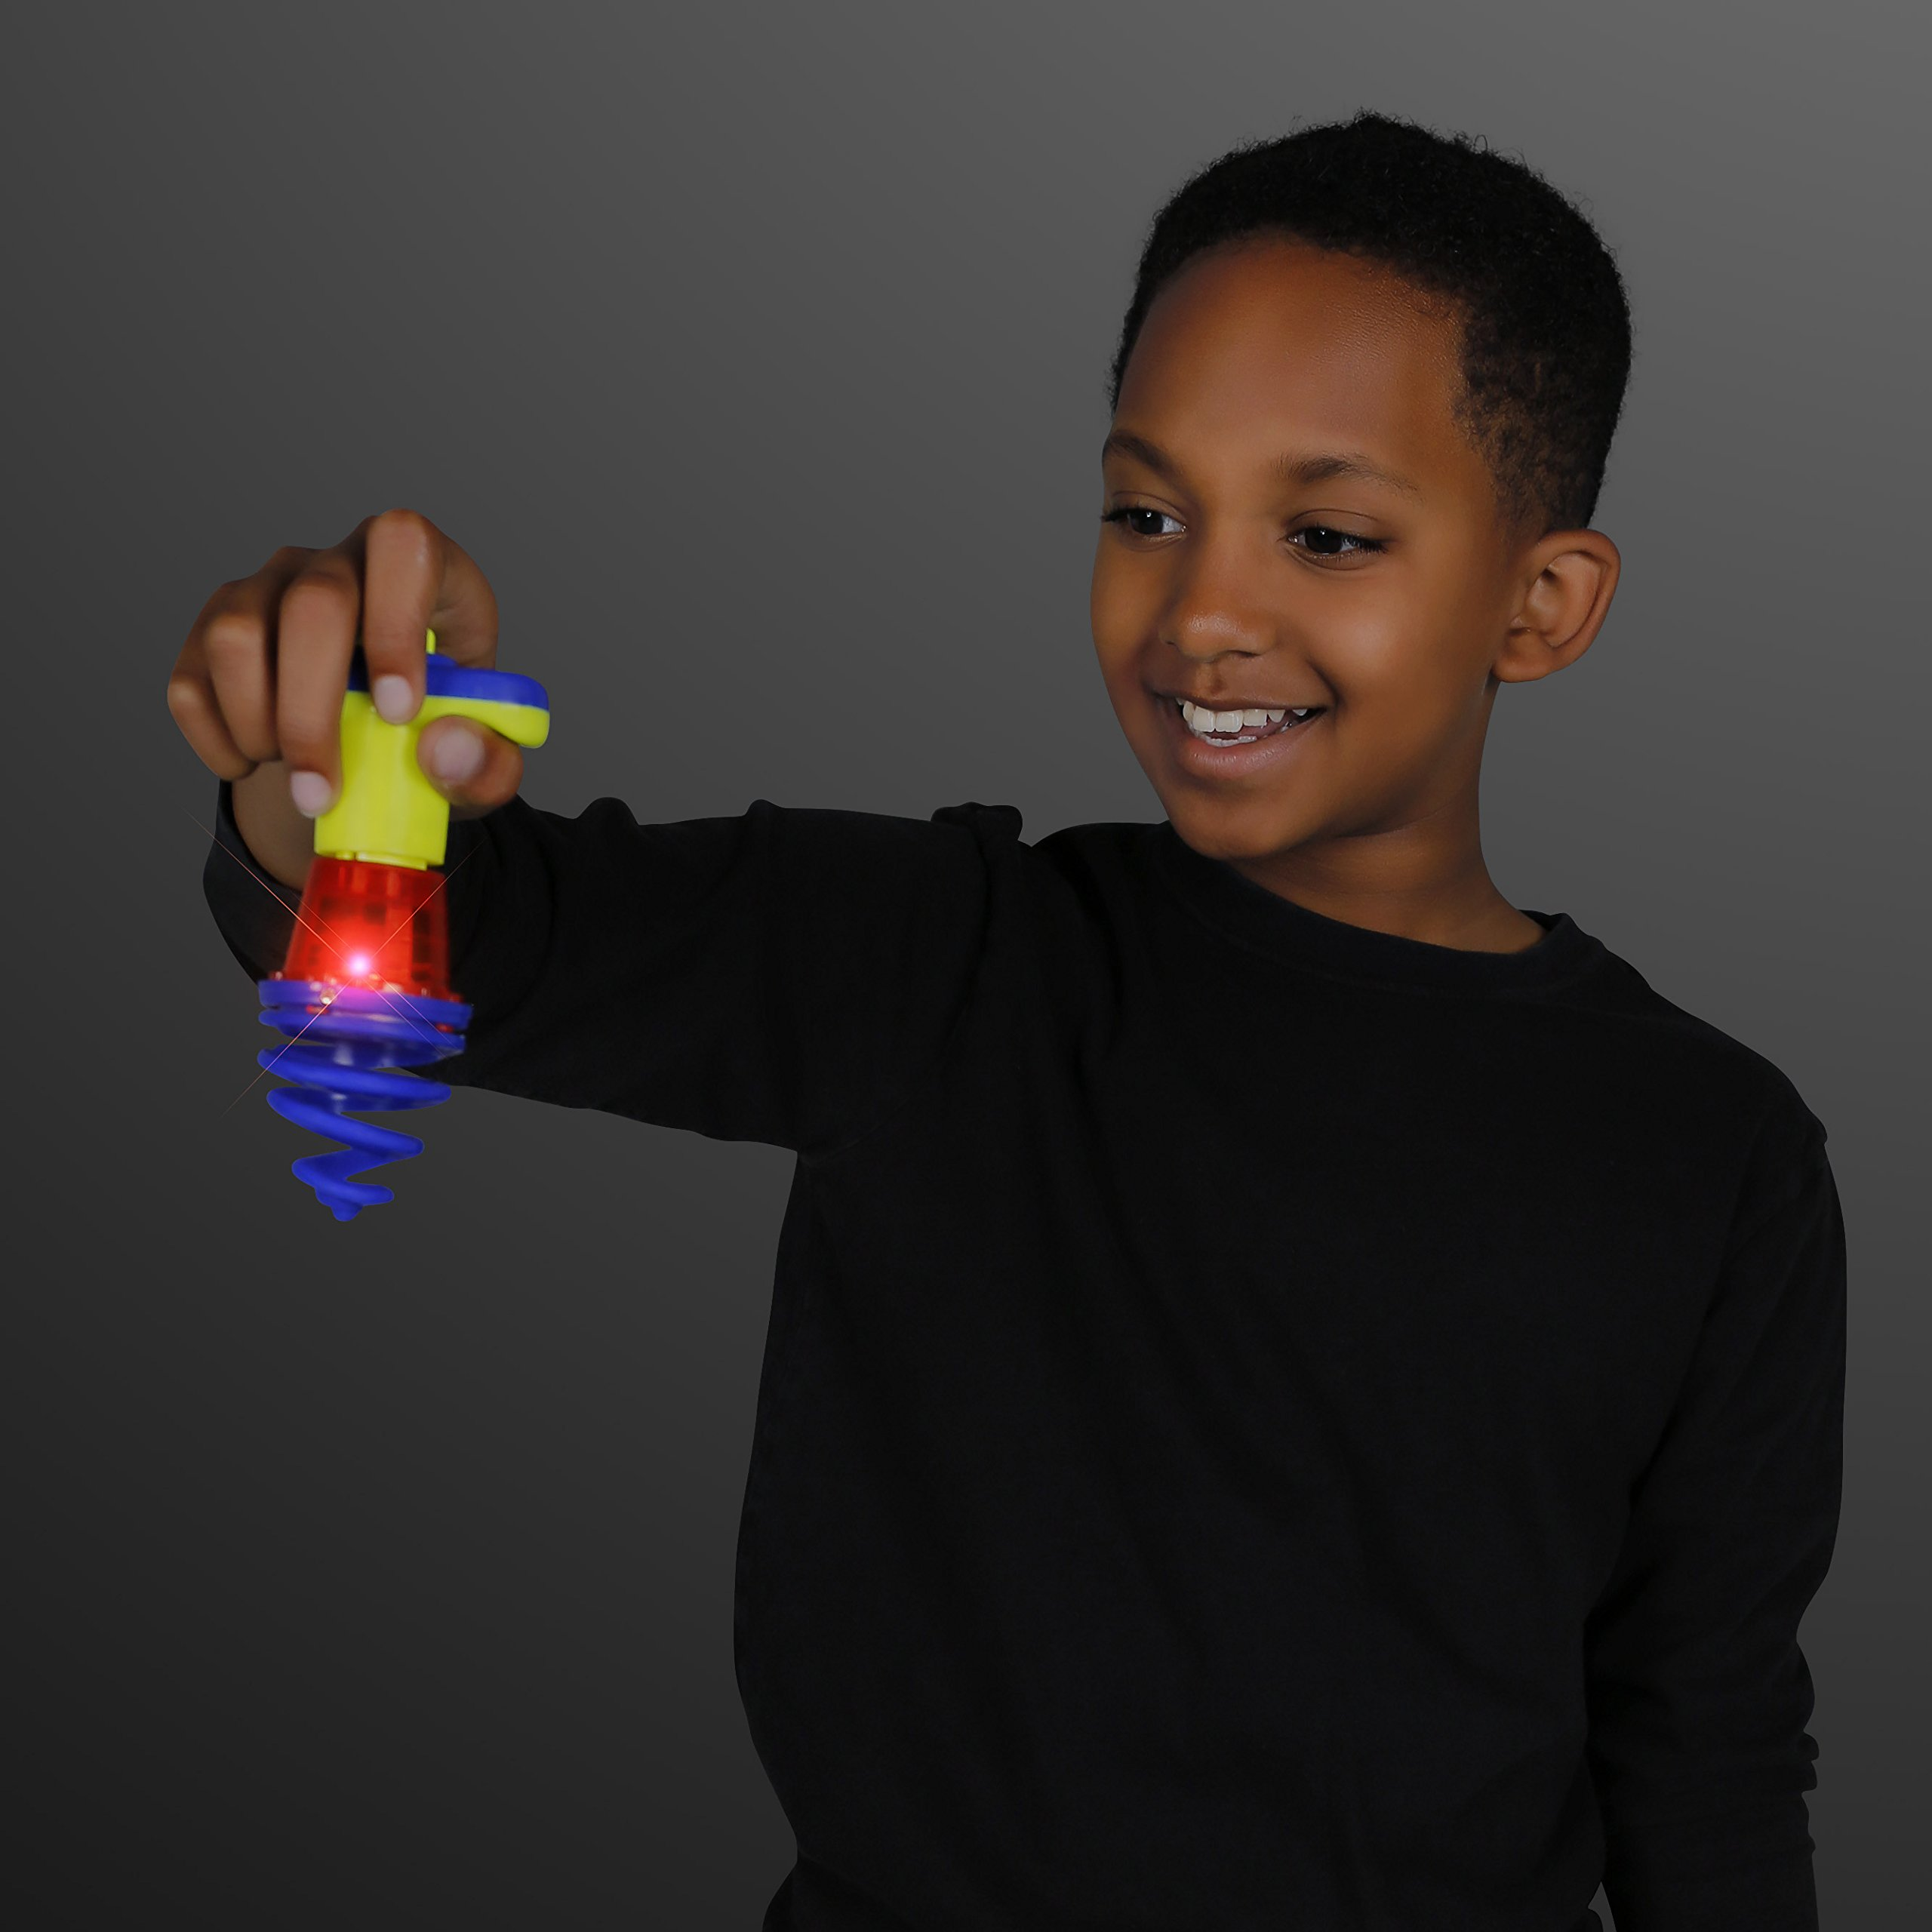 FlashingBlinkyLights Light Up Bounce & Spin Top with Red LED (Set of 12)